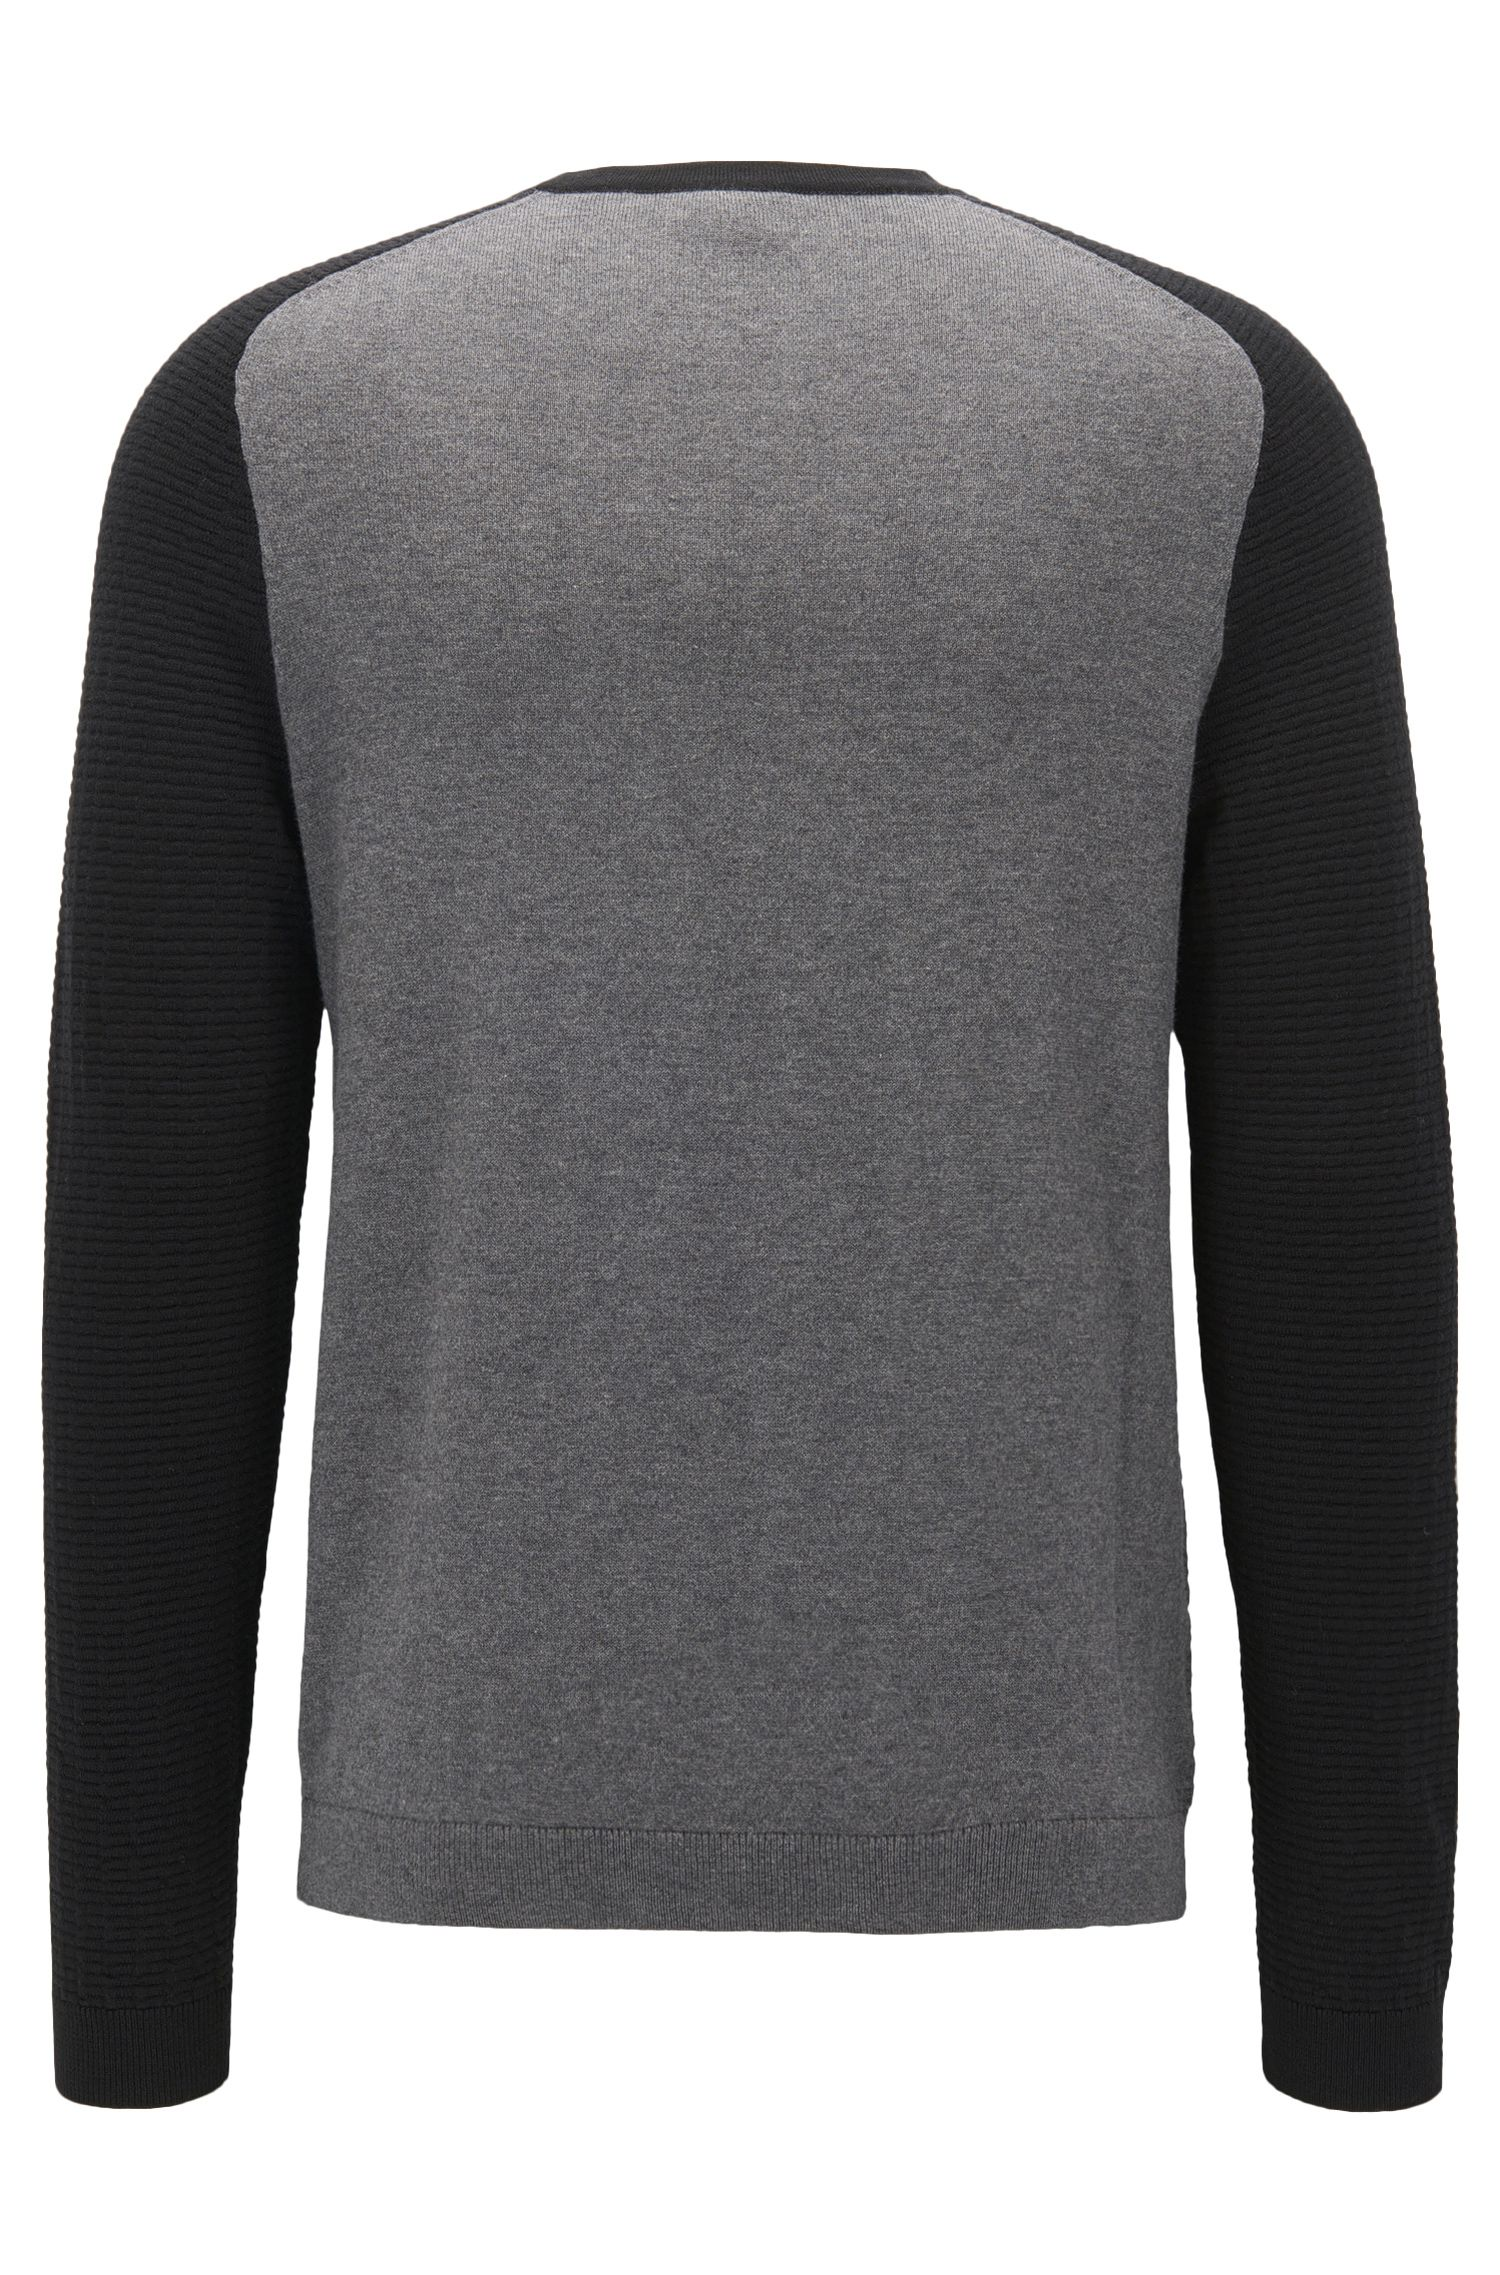 Regular-Fit Pullover aus Baumwoll-Mix im Colour Block Design